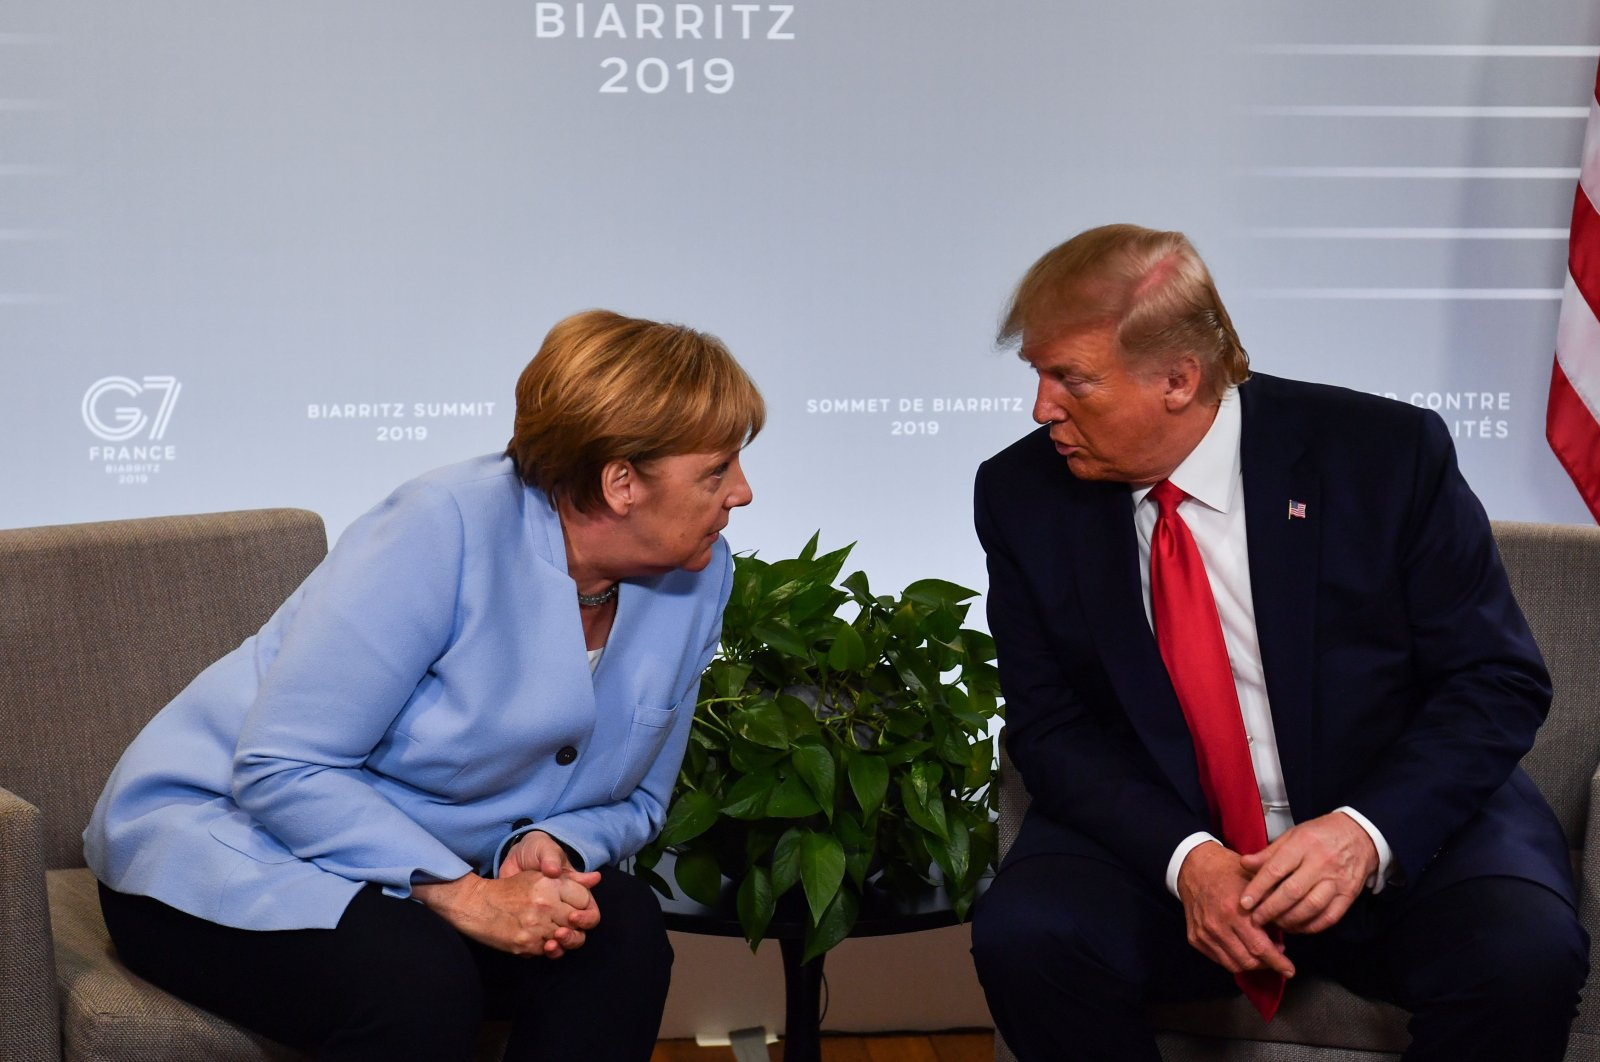 German Chancellor Angela Merkel (L) and U.S. President Donald Trump speak during a bilateral meeting on the sidelines of a Group of Seven summit in Biarritz, southwestern France, Aug. 26, 2019. (AFP Photo)